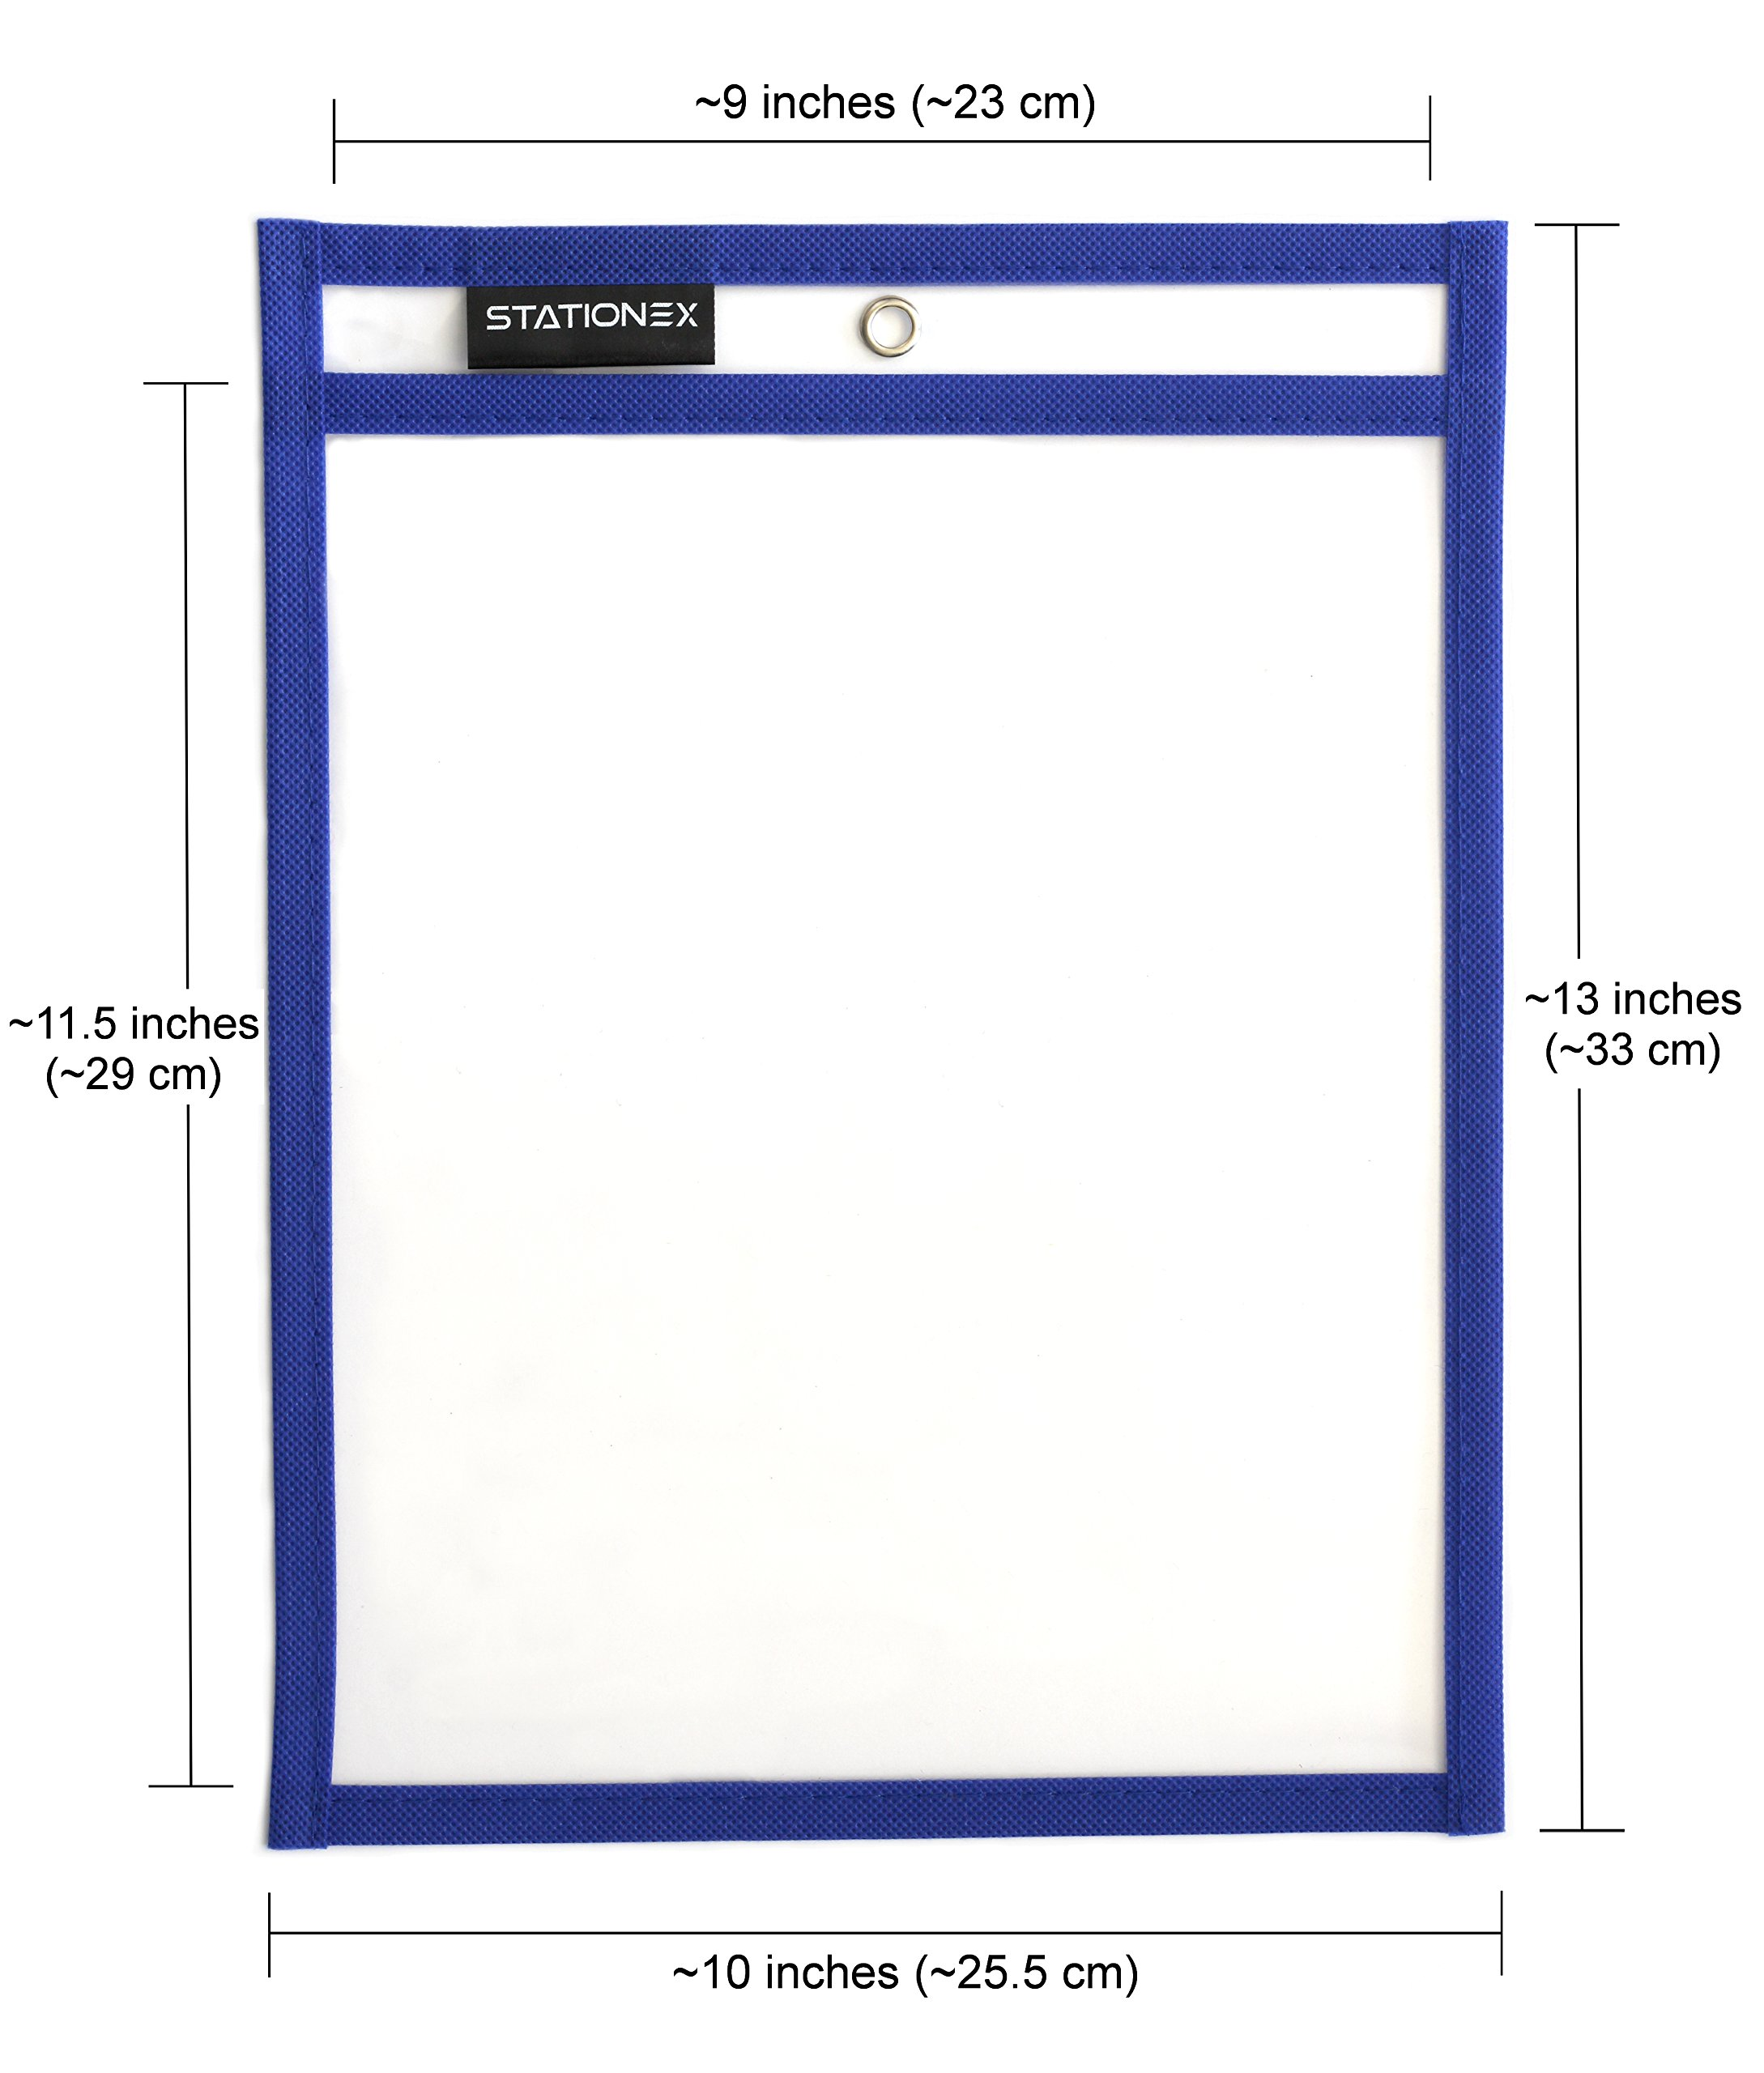 Reusable Dry Erase Pockets, Large Size 10 x 13 Inches, 10 Assorted Color Write and Wipe Off Sleeves + 2 Erasers per Pack - by Stationex by Stationex (Image #3)